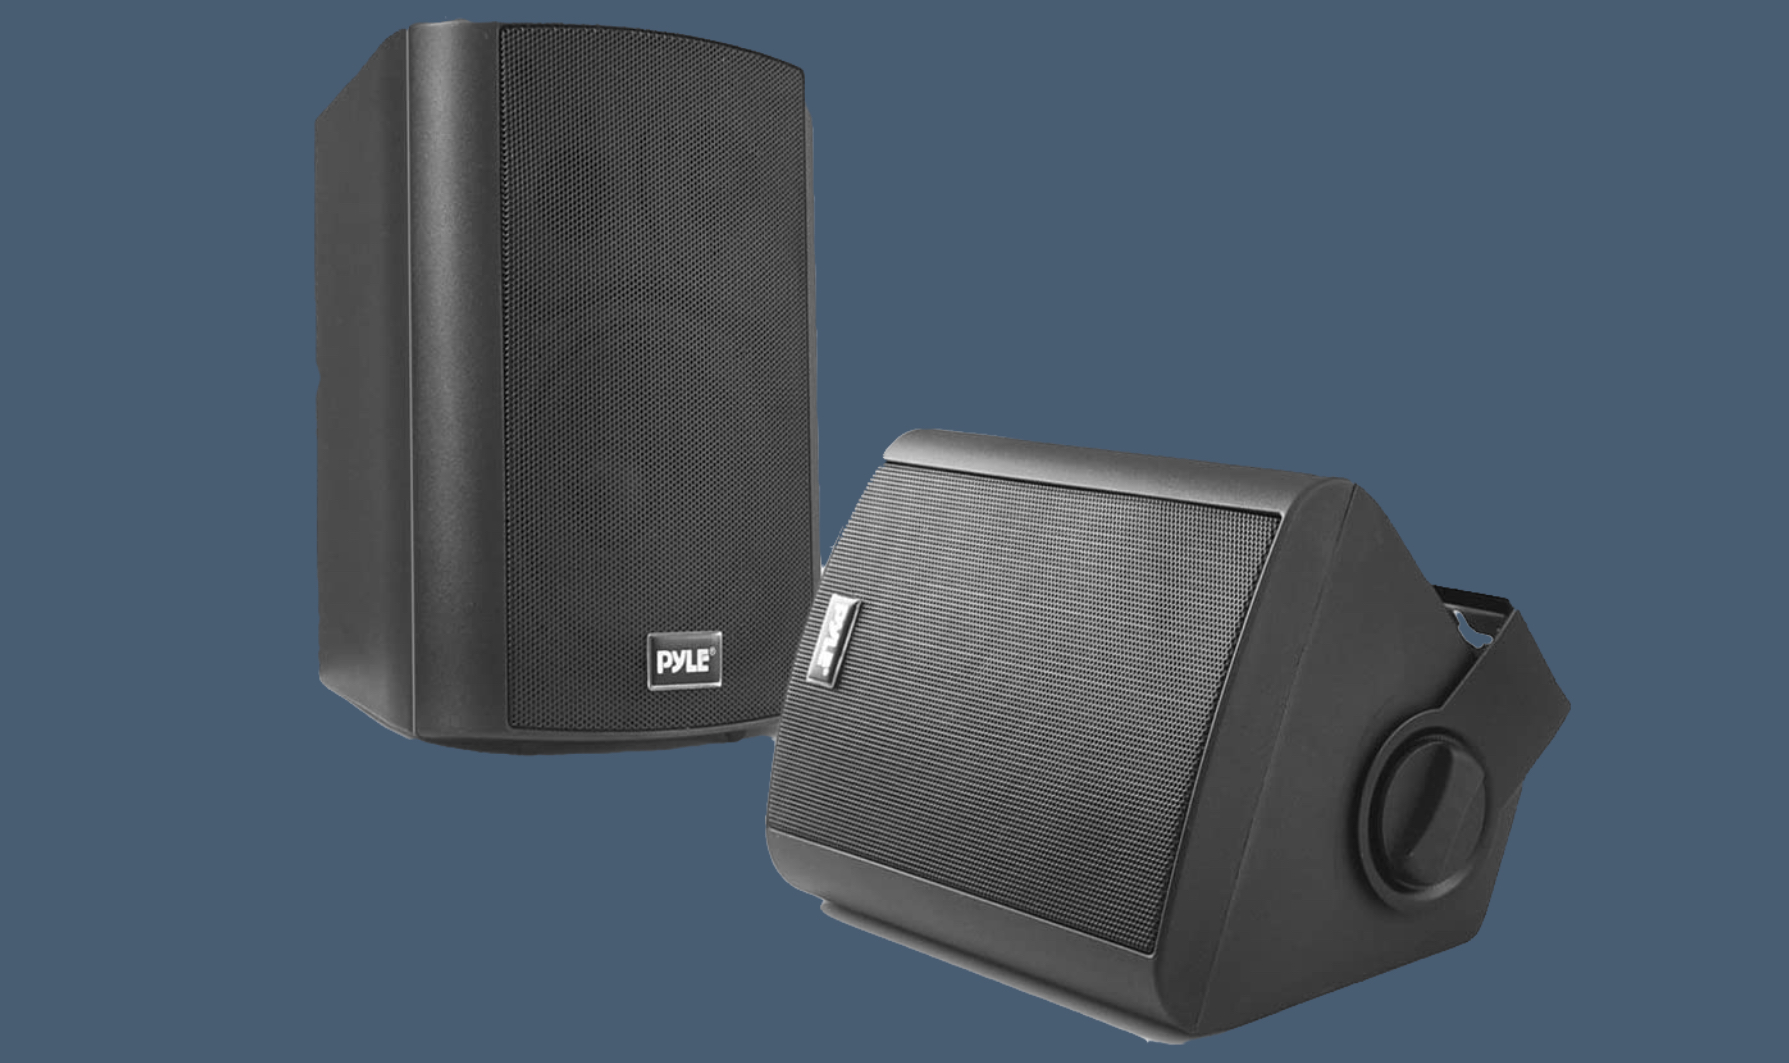 Pyle Wall Mount Home Speaker System